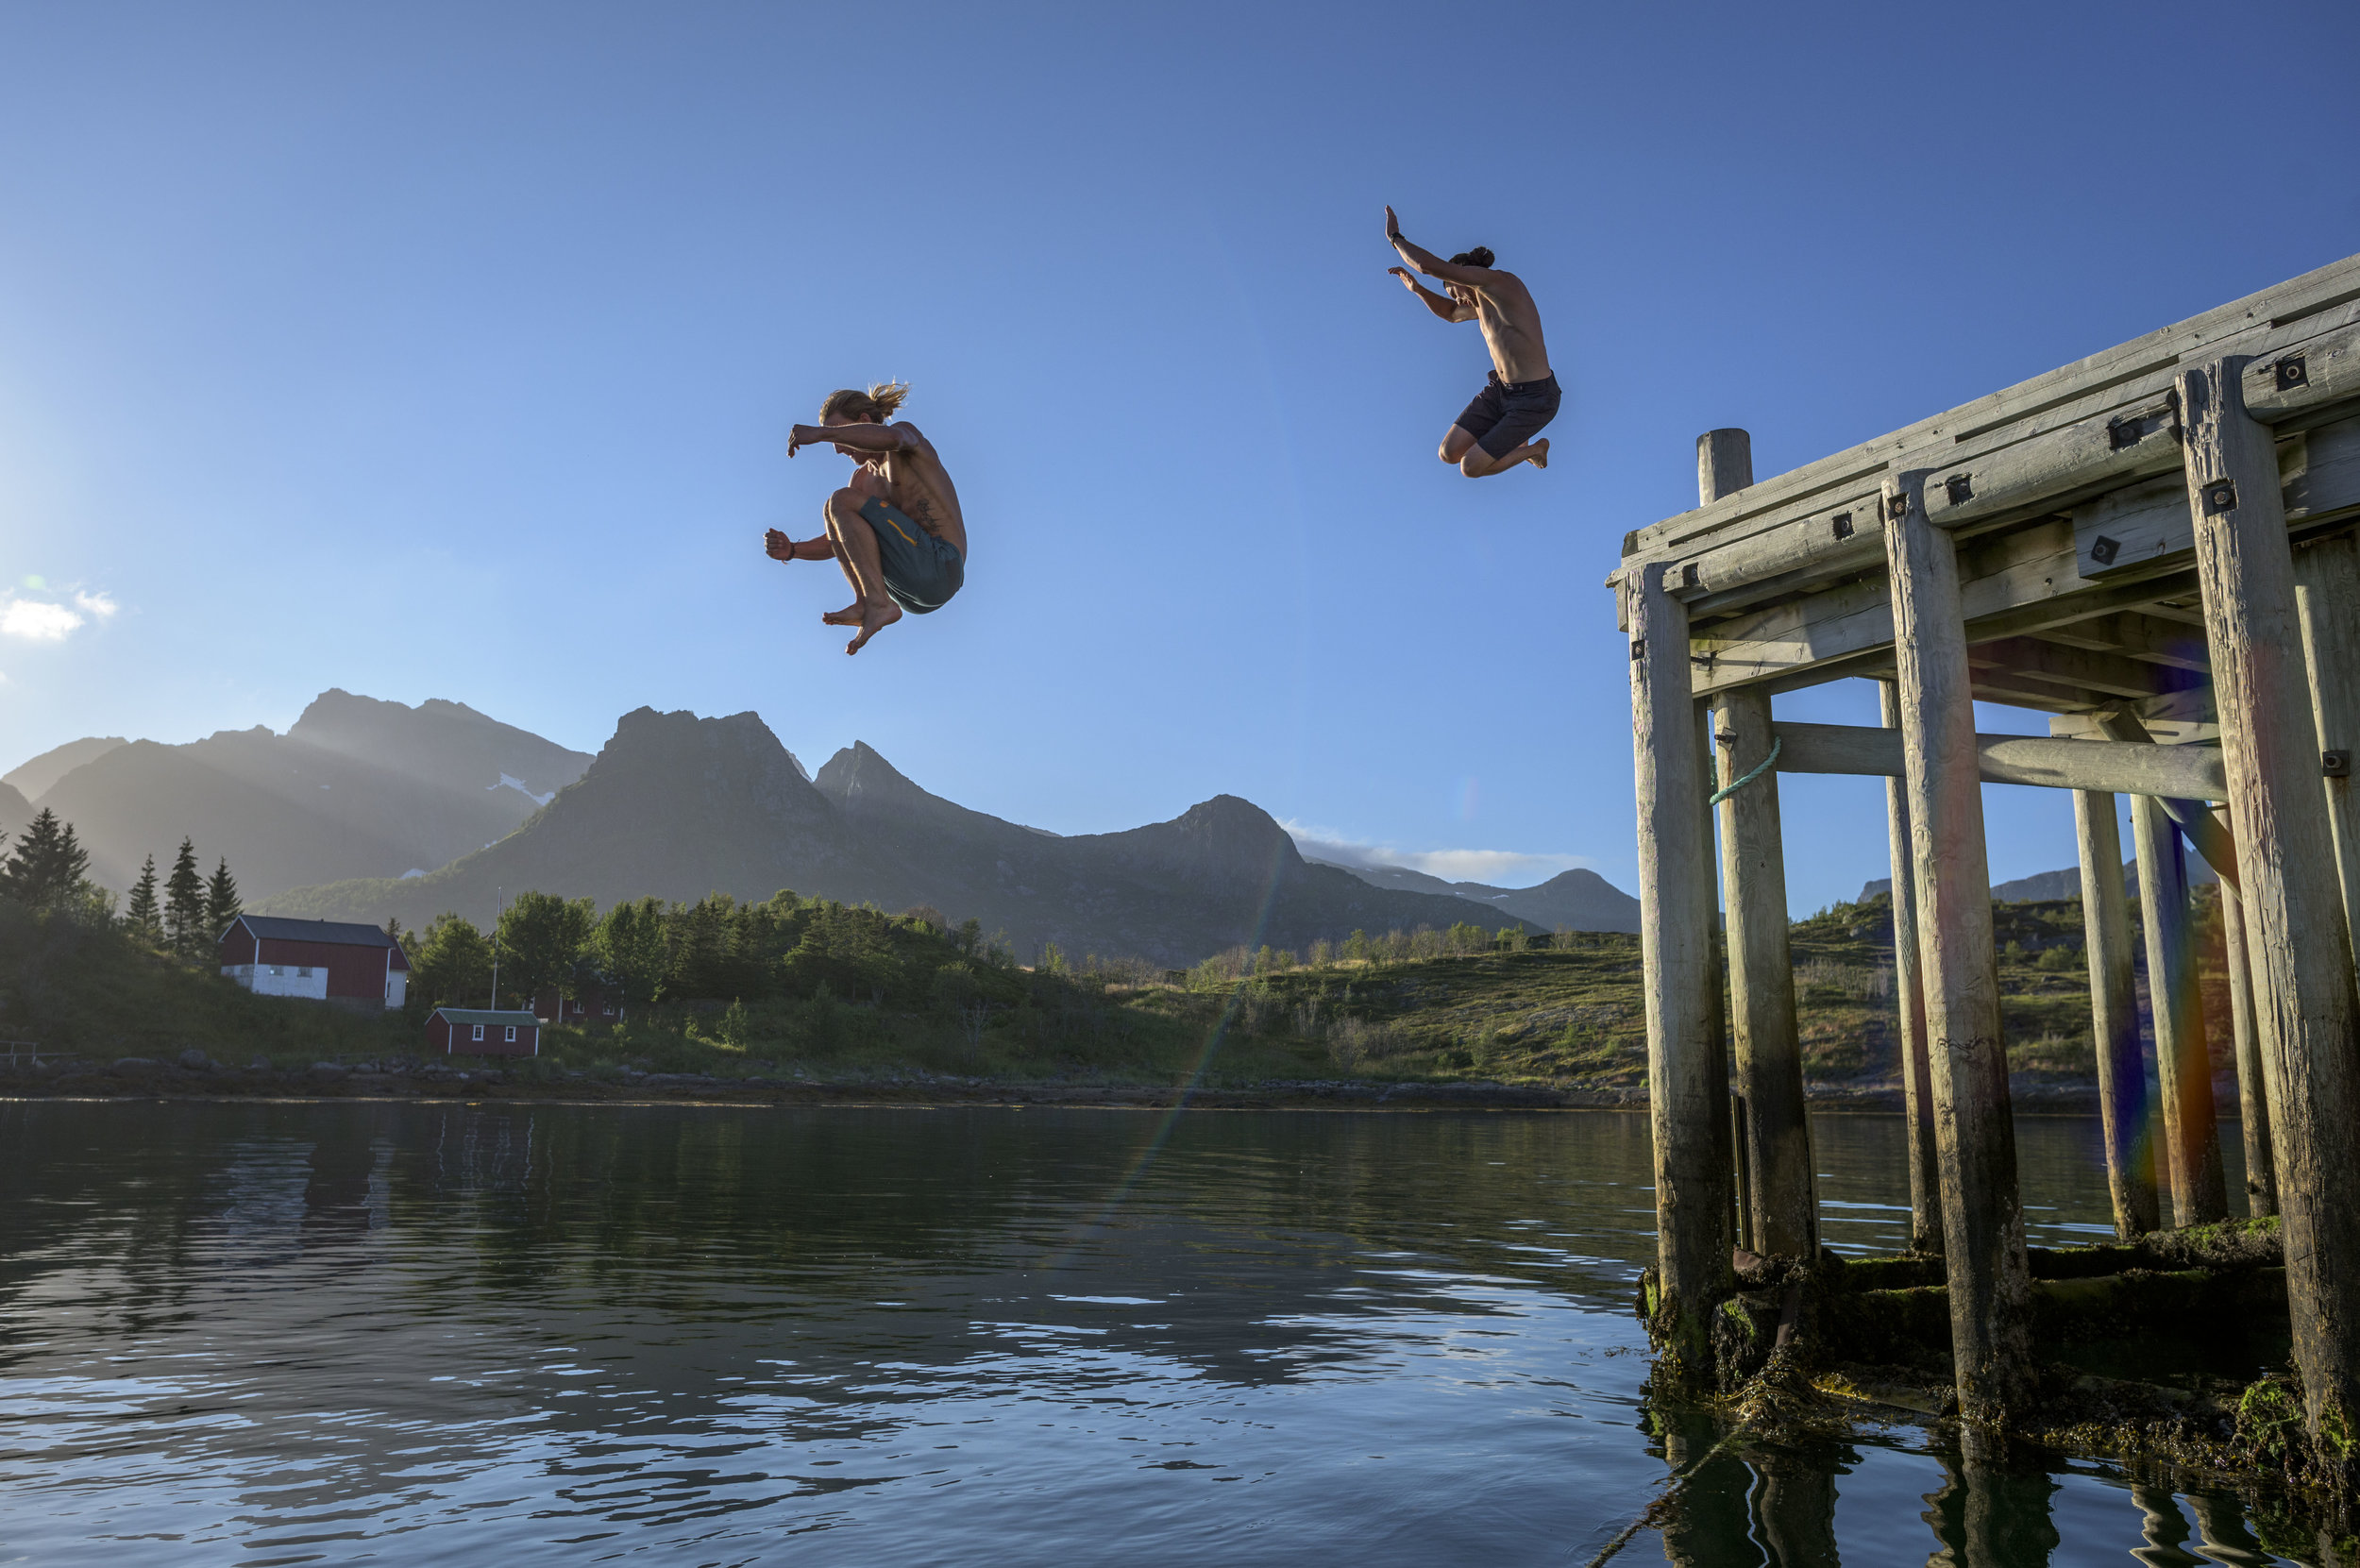 Johnny Collinson and Blake Hendrix. Lofoten, Norway. Photography by Tim Kemple.